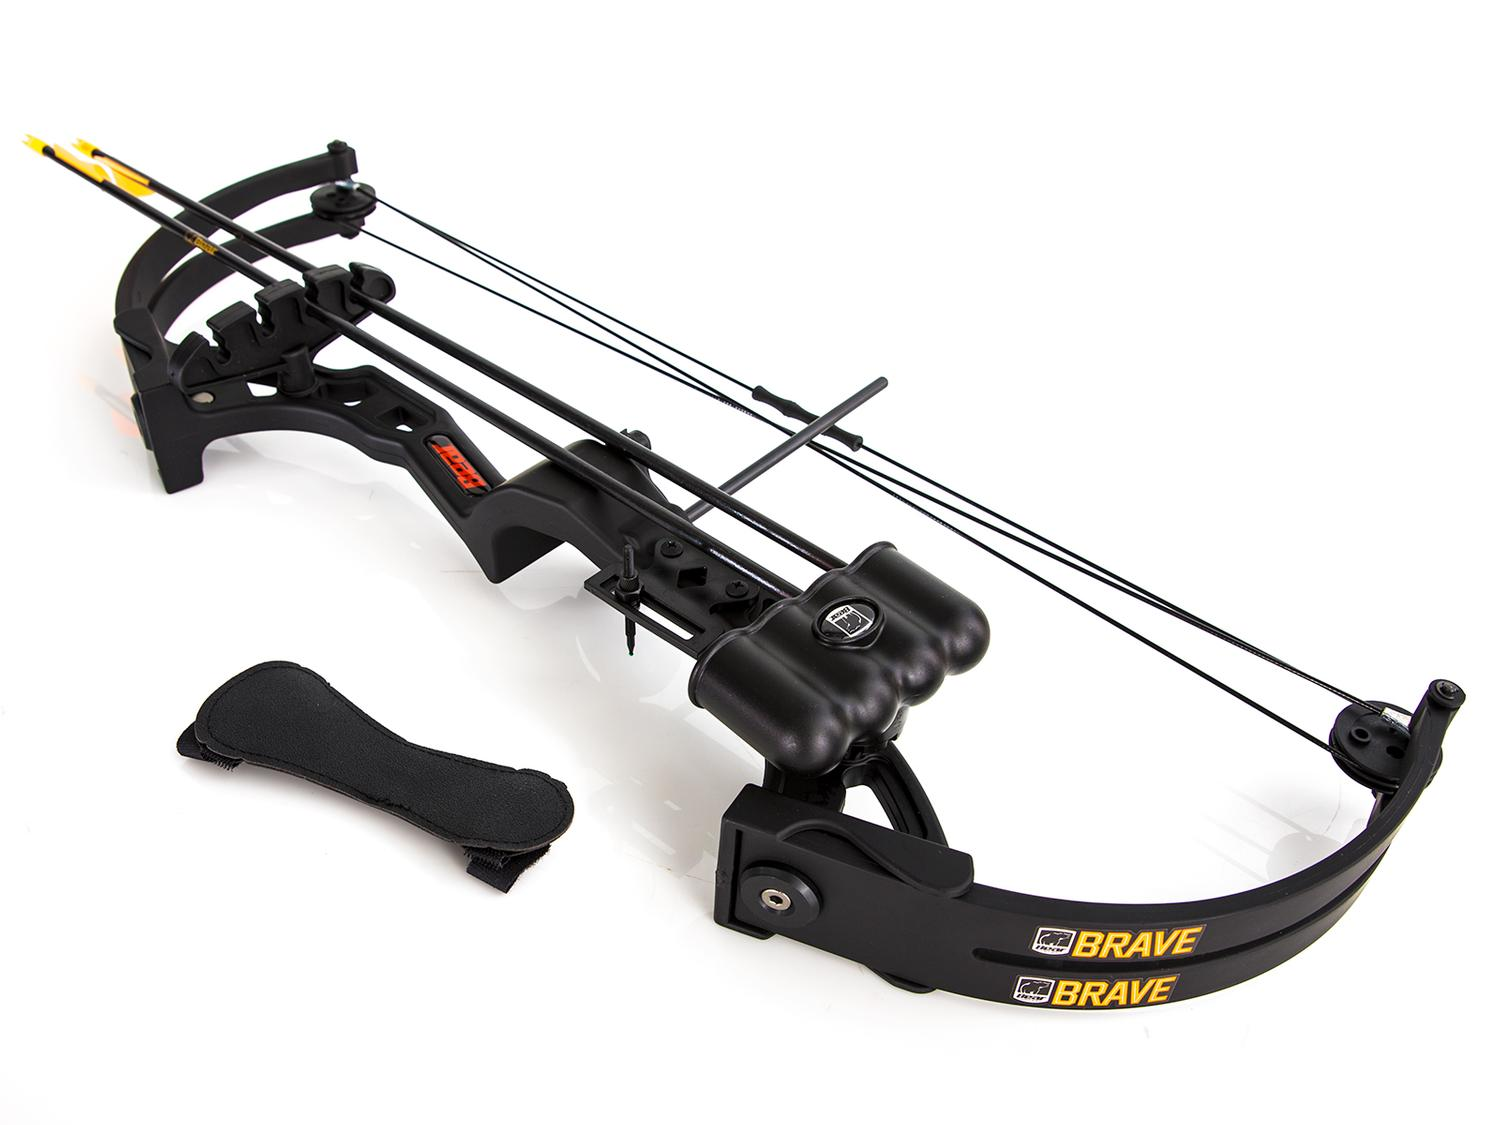 Perfect compound bow set for beginners